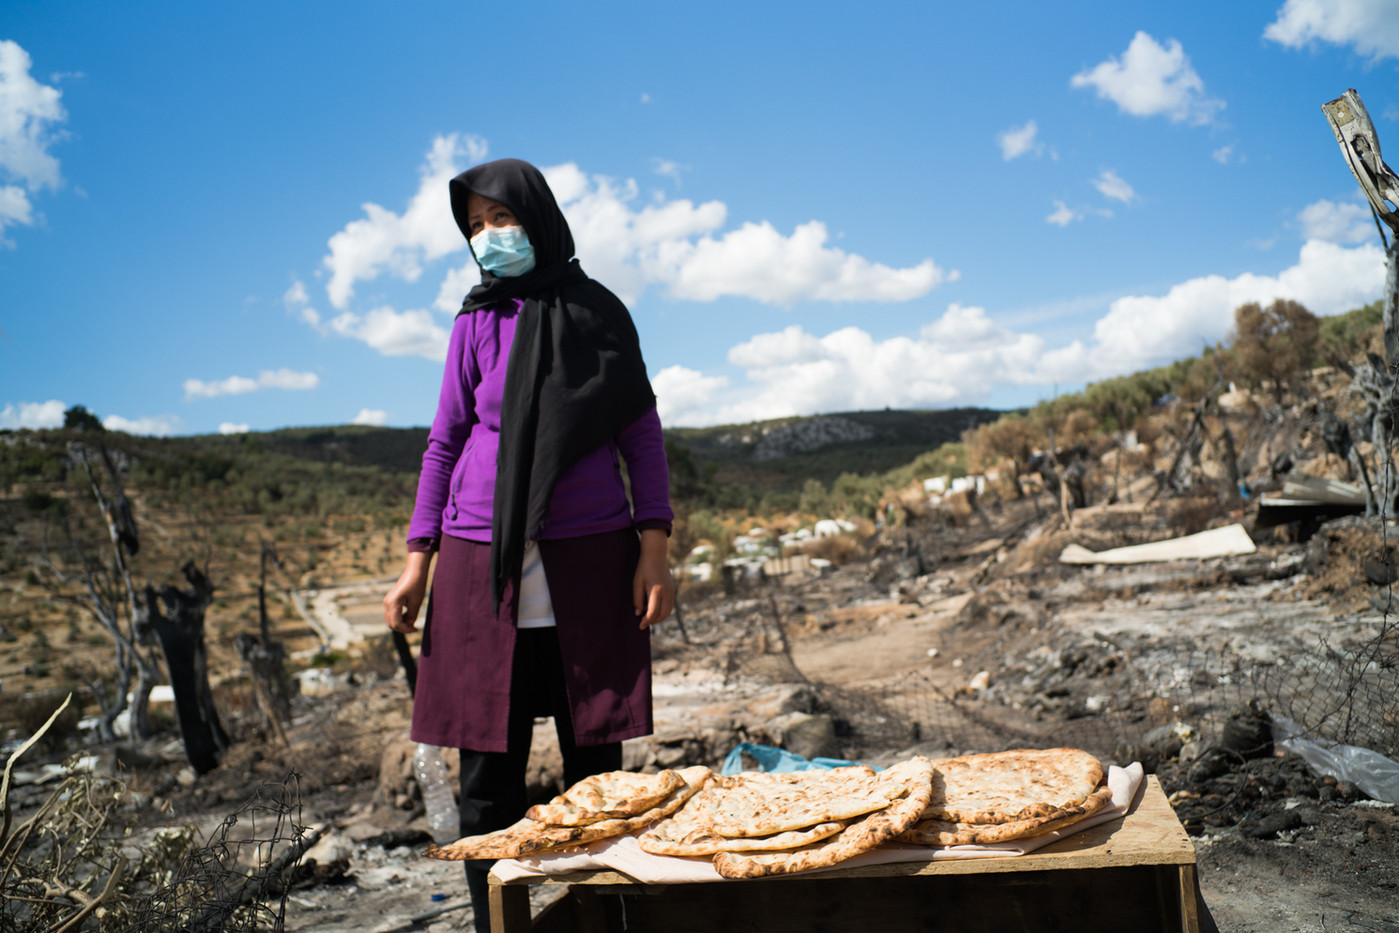 Lalla and her family cook bread every day in the remains of a home oven in Moria´s Camp. The practice of baking bread has been one of the many actions that migrants had to adopt in order to supply their families with more food.